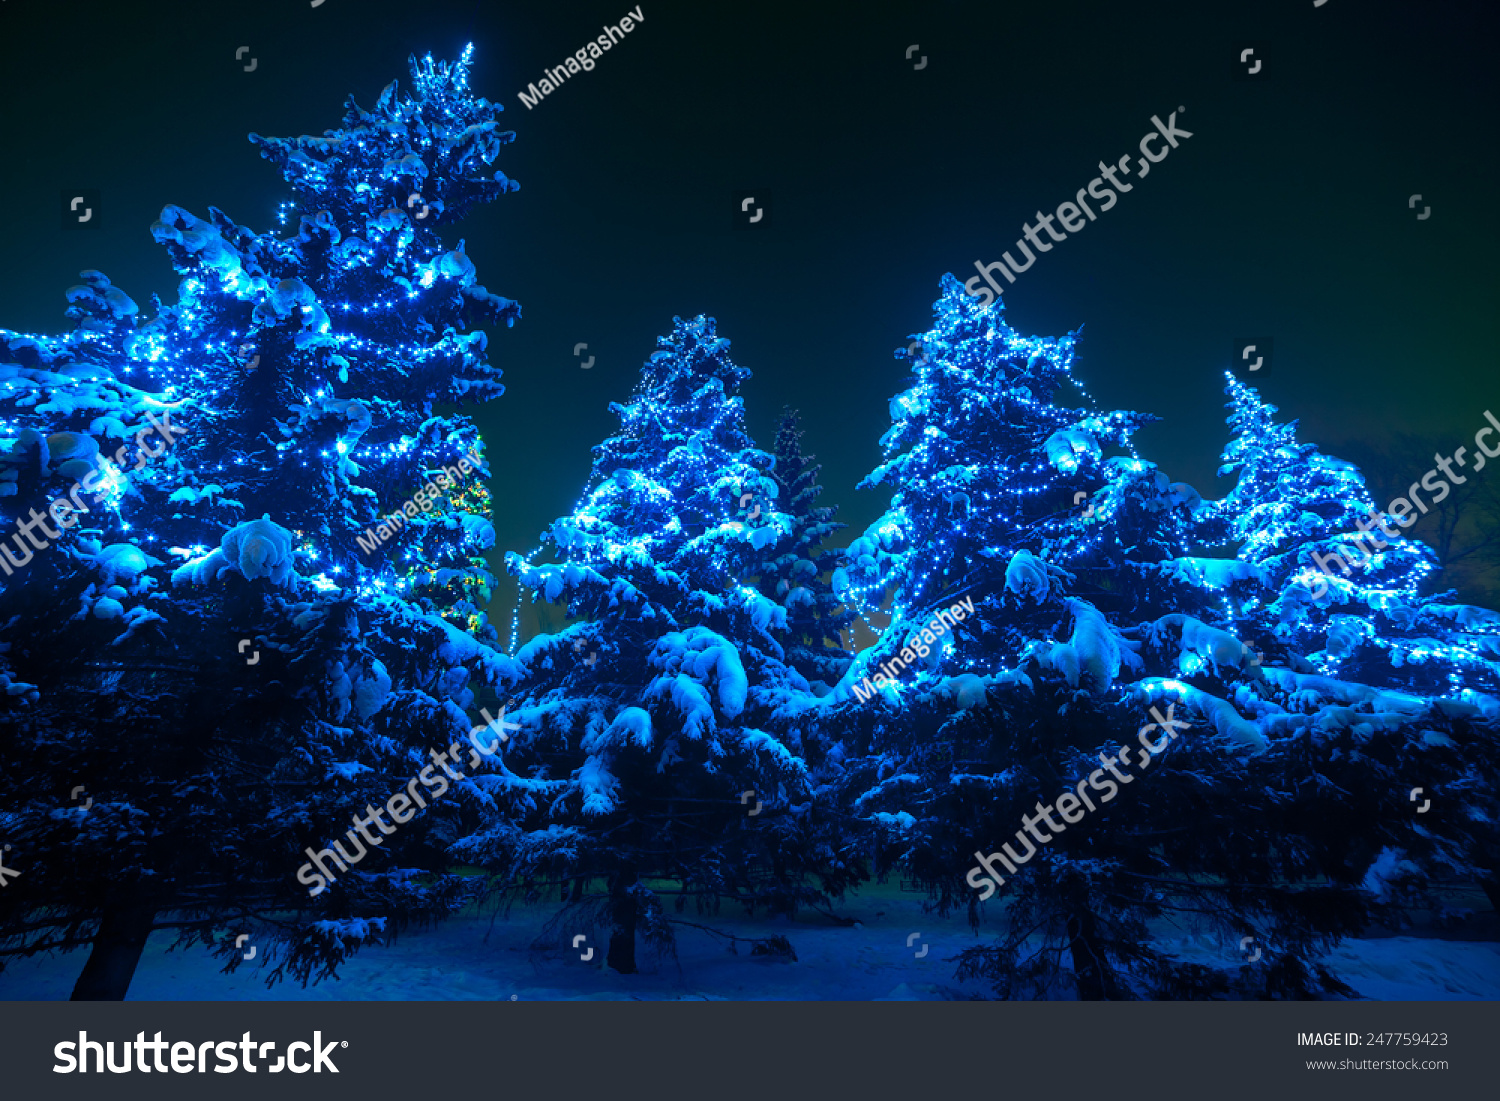 snow covered christmas tree lights in a winter forest by night huge fir trees with - Snow Covered Christmas Trees